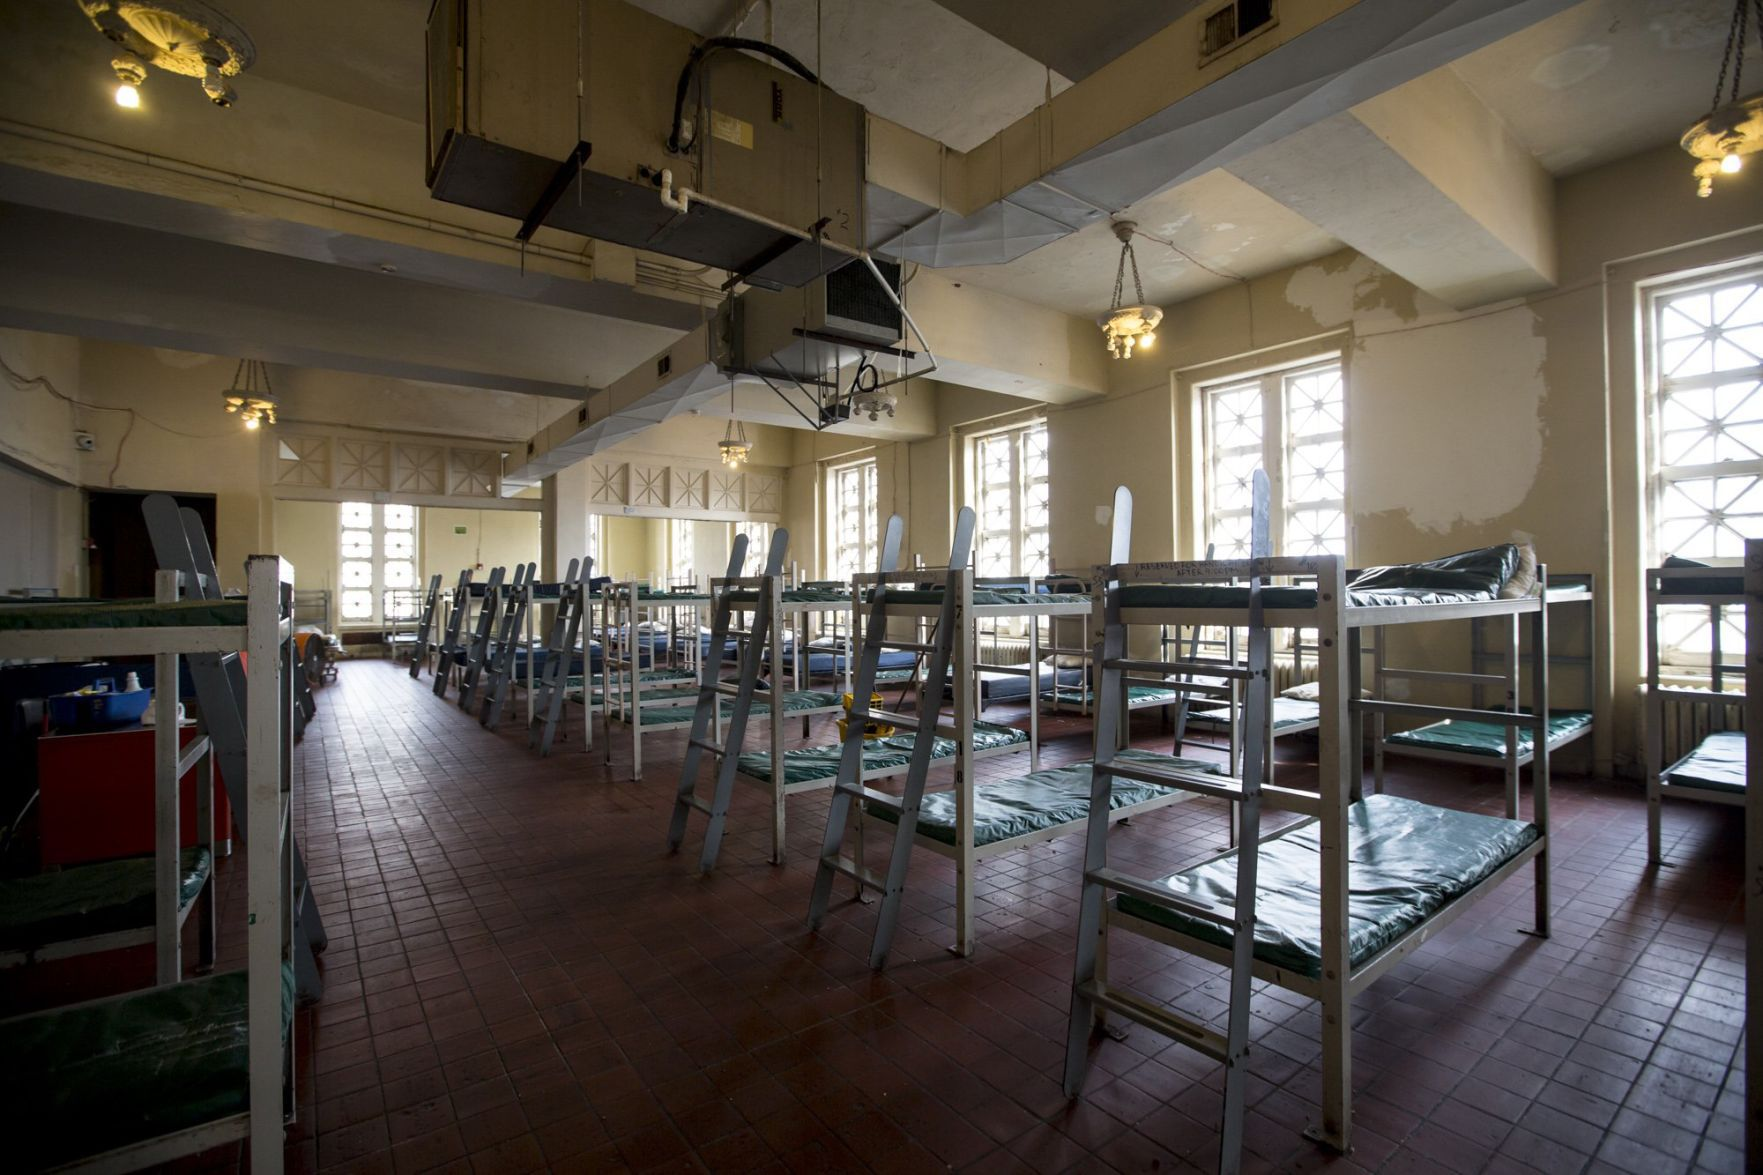 St Louis largest homeless shelter emptied following order from